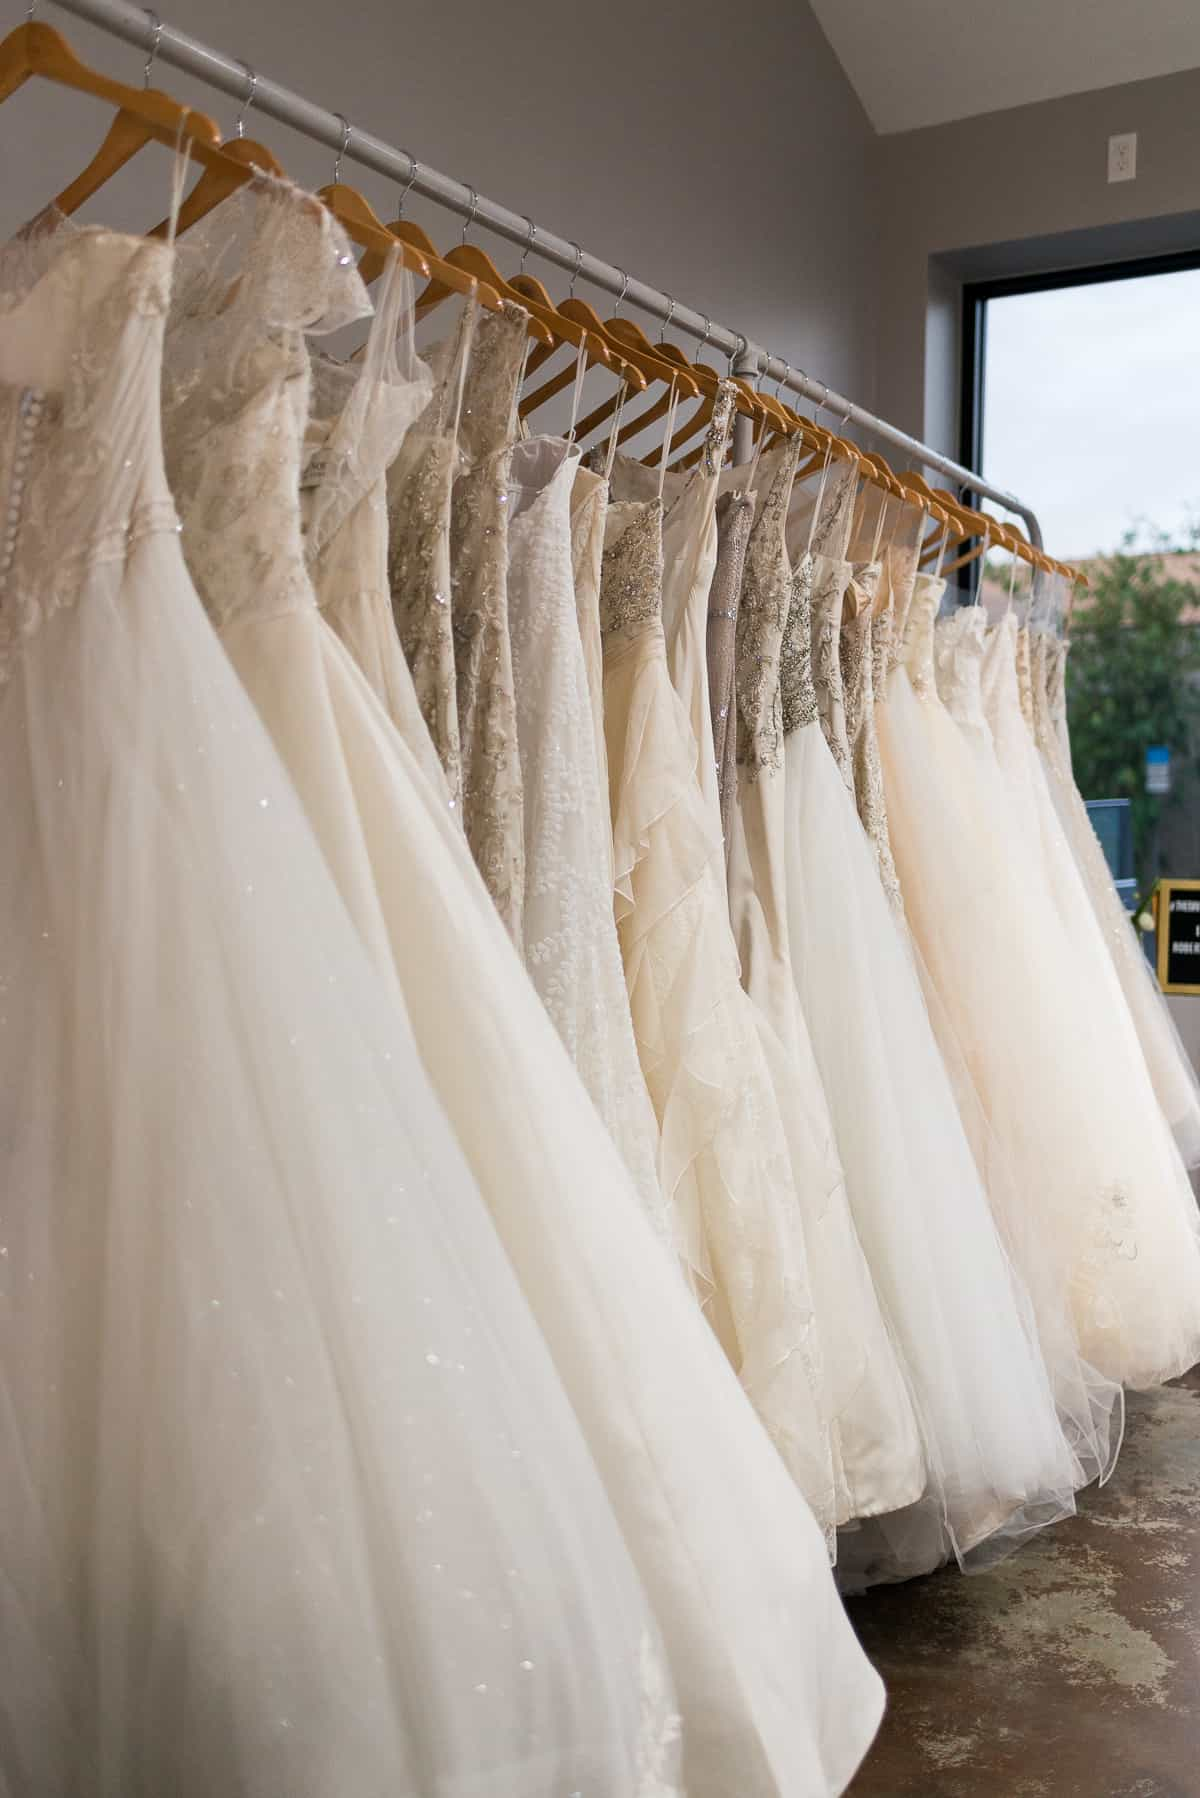 whtie wedding dresses on wooden hangers at The Bridal Fienry